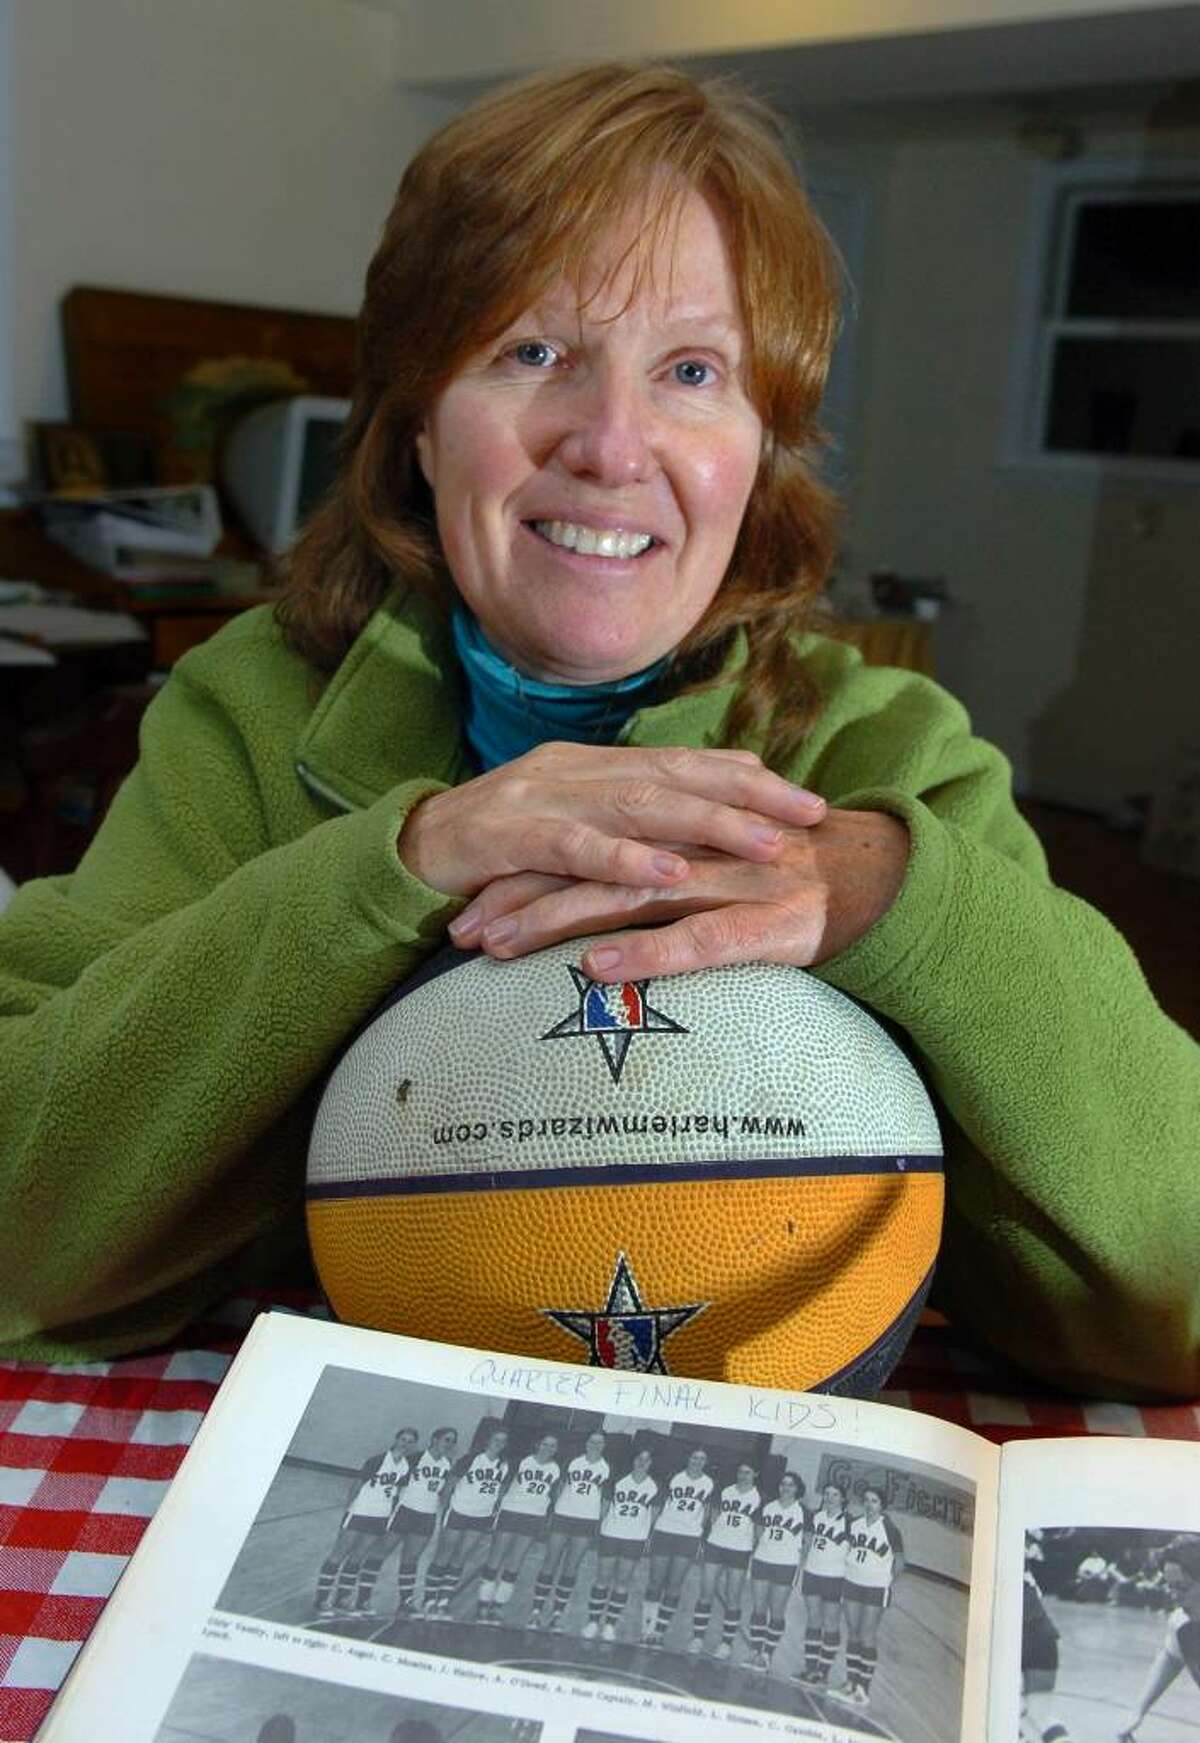 April Hunt was the first female athlete in Connecticut to receive an athletic scholarship to college in 1972. Hunt attened Foran High and held a record until recently. She will be inducted into the state Basketball Hall of Fame later this month. Here, Hunt poses with a basketball and her high school team photo at her home in Milford, Conn. on Friday Nov. 06, 2009.